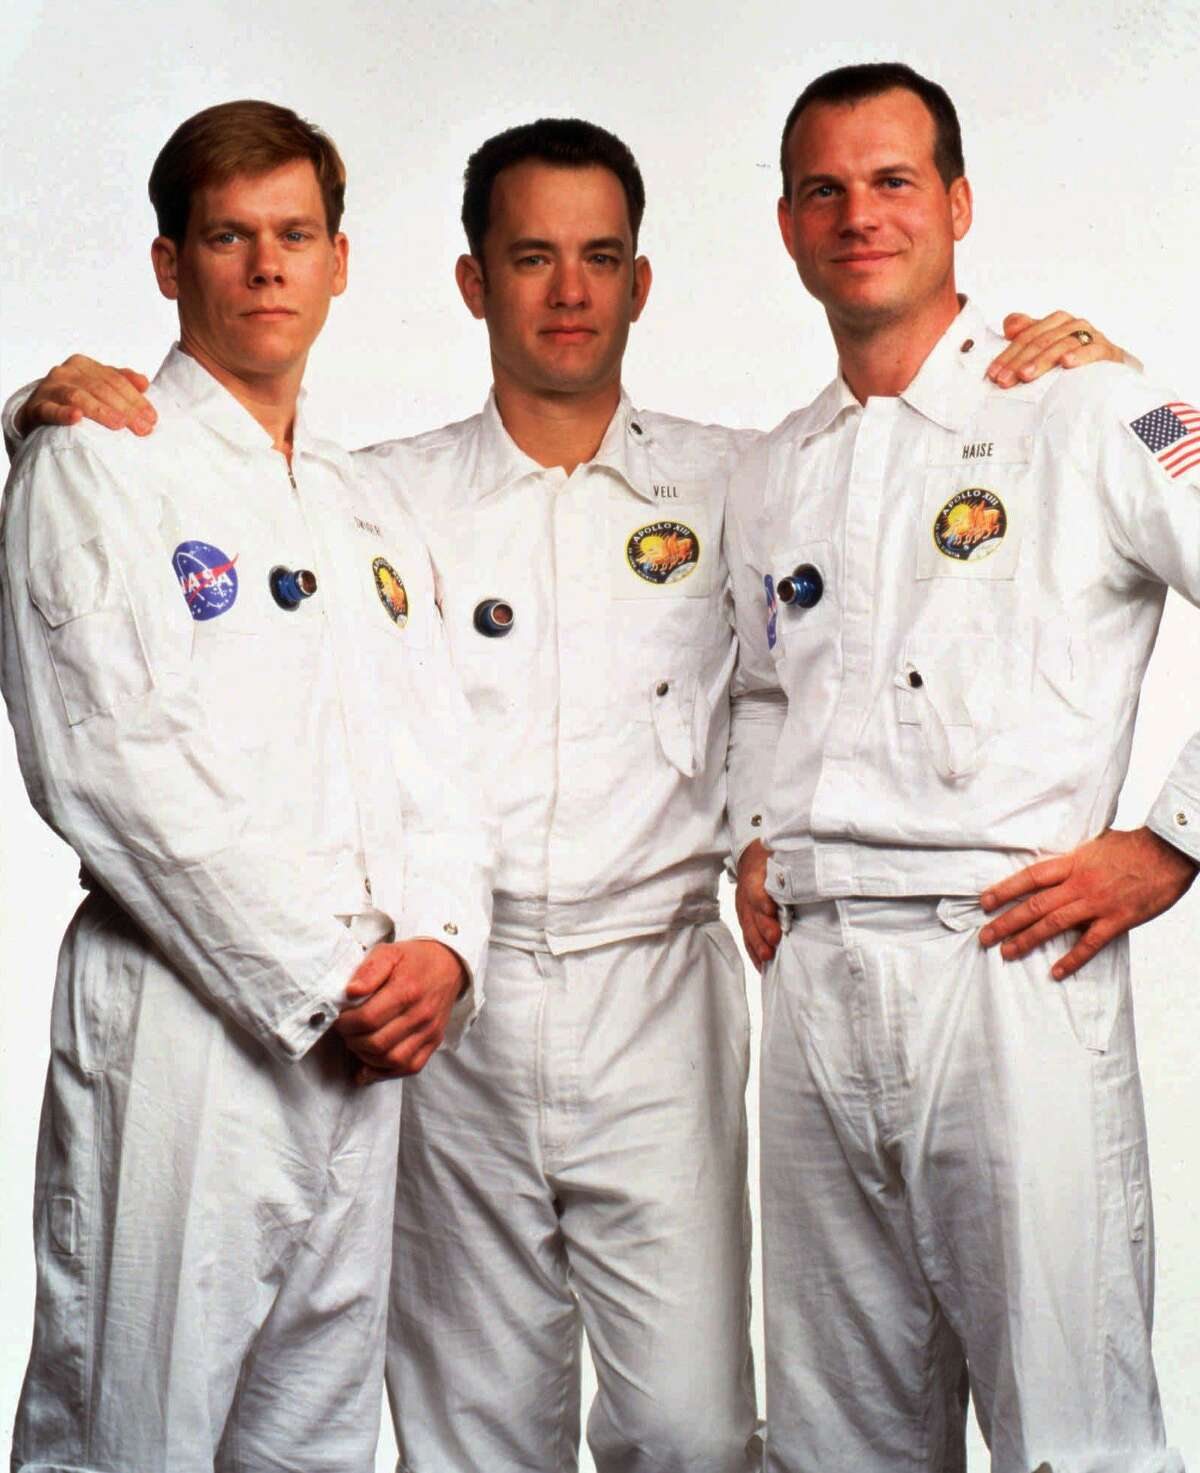 """Tom Hanks, center, poses with fellow actors Kevin Bacon, left, and Bill Paxton in flight suits for the movie """"Apollo 13,"""" directed by Ron Howard, which tells the story of the ill-fated 1970 moon shot."""